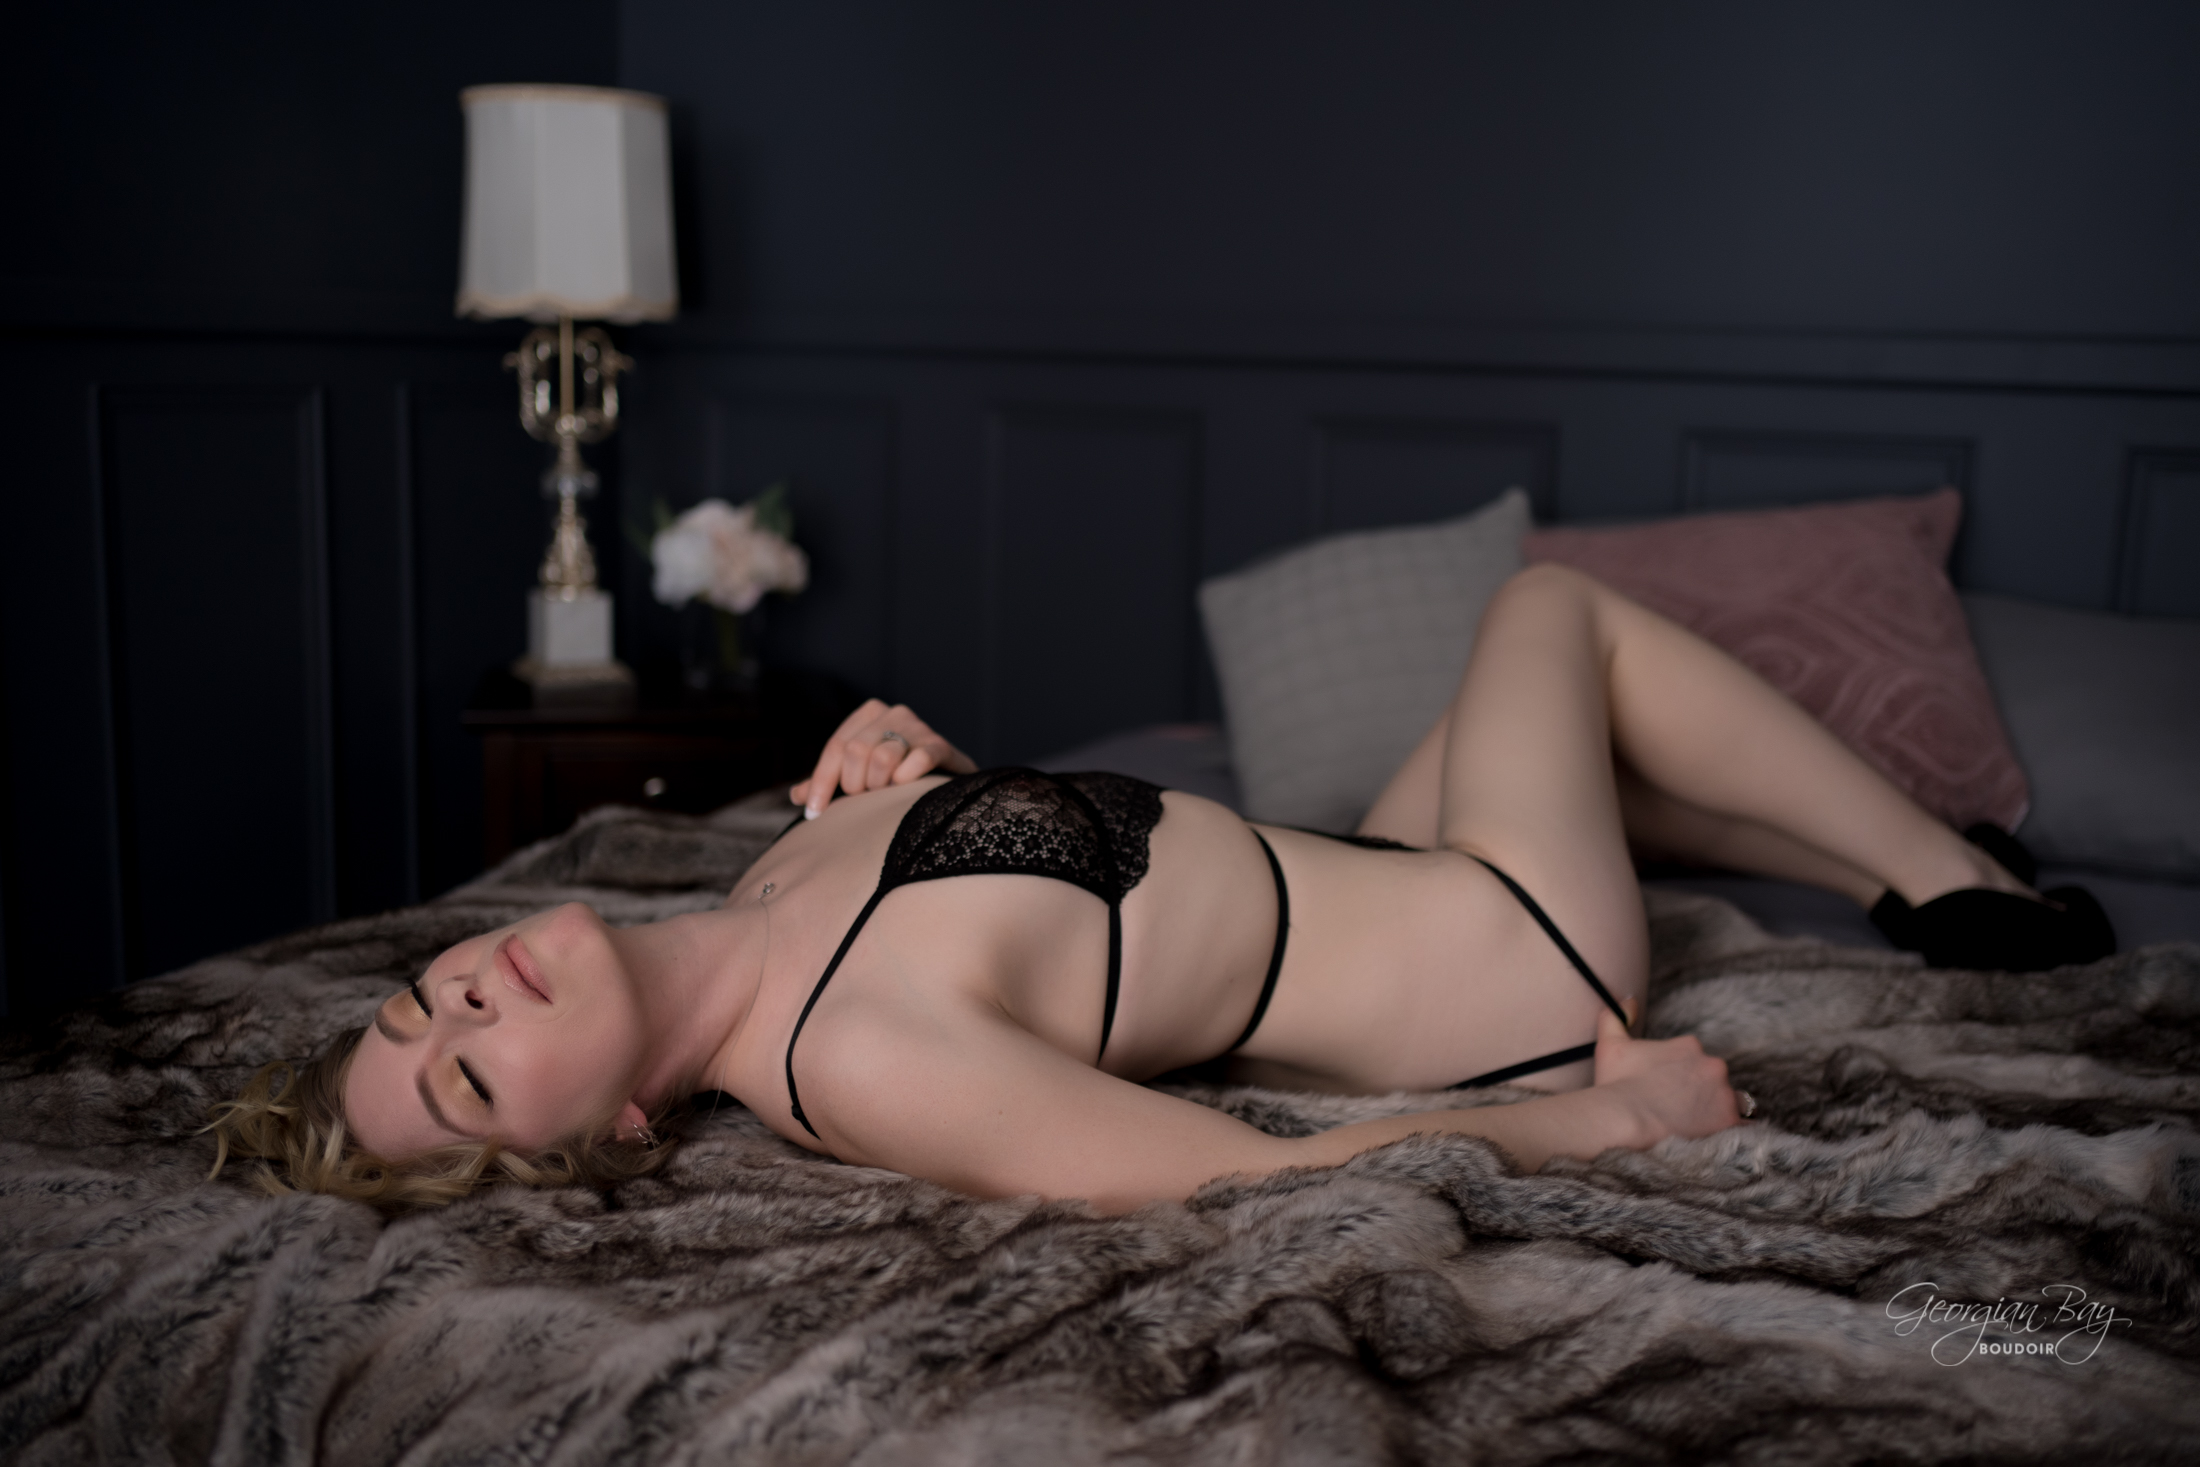 Beautiful blond woman poses in Parry Sound boudoir studio